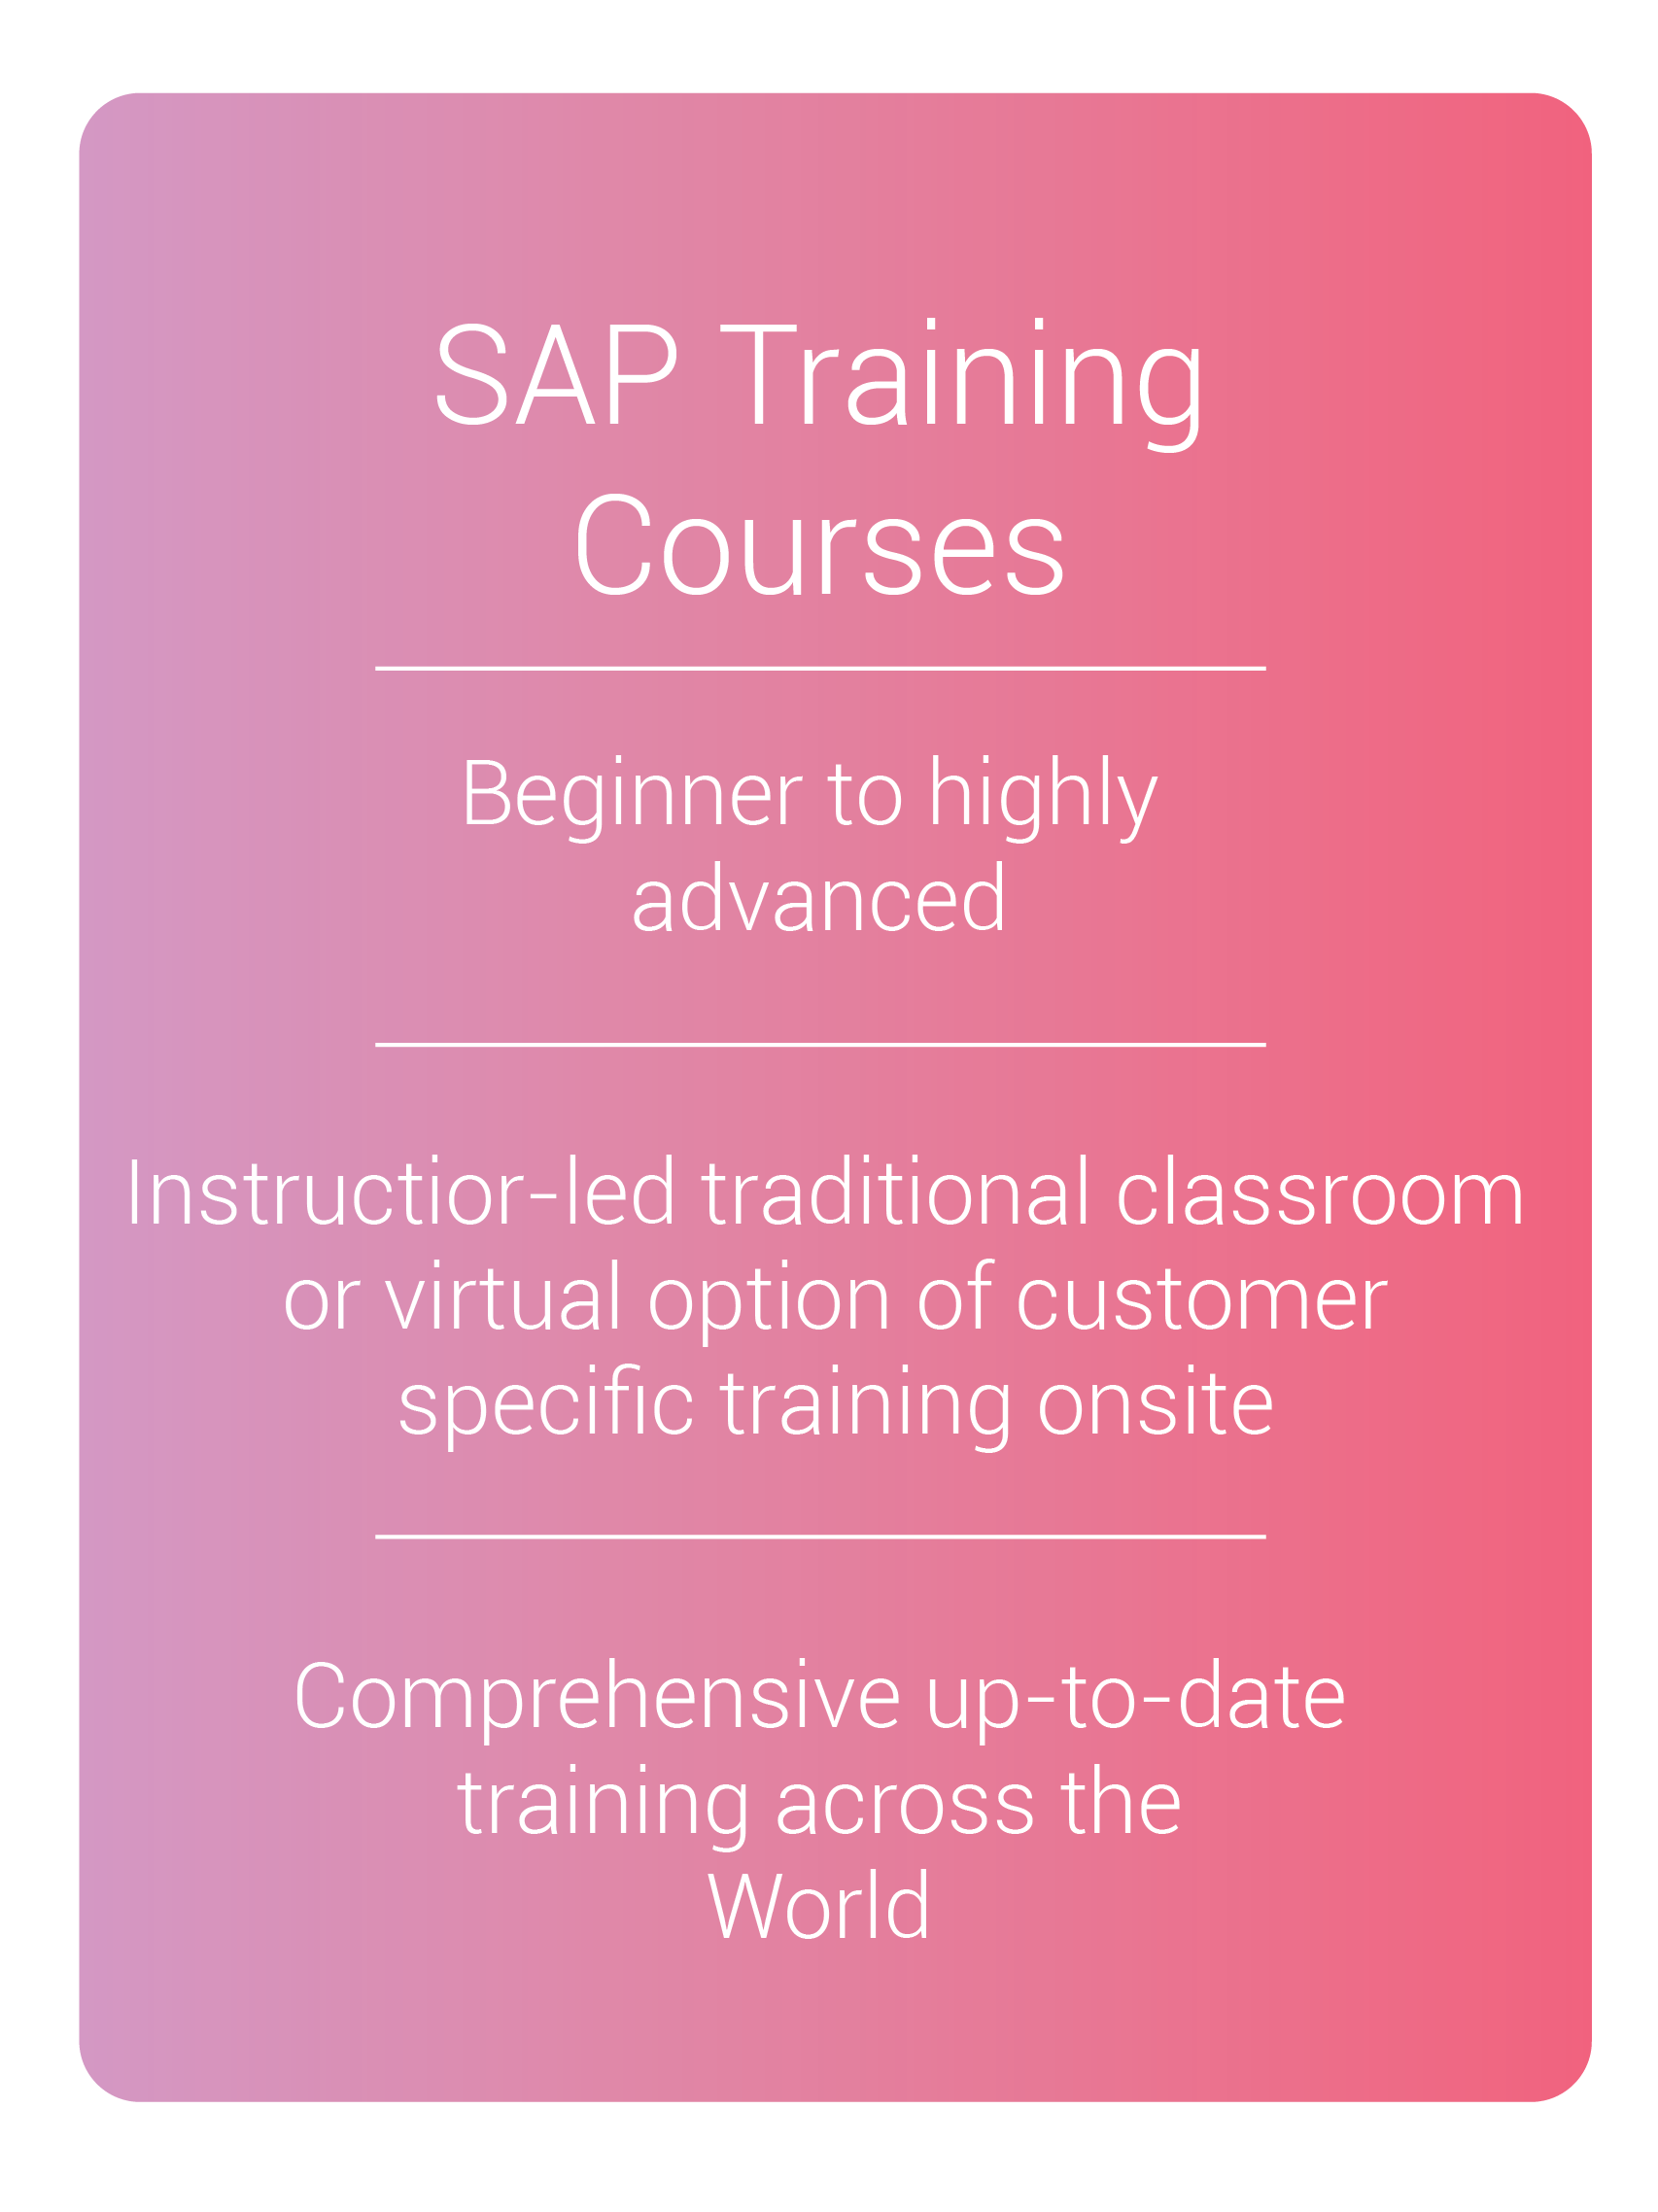 sap online training course